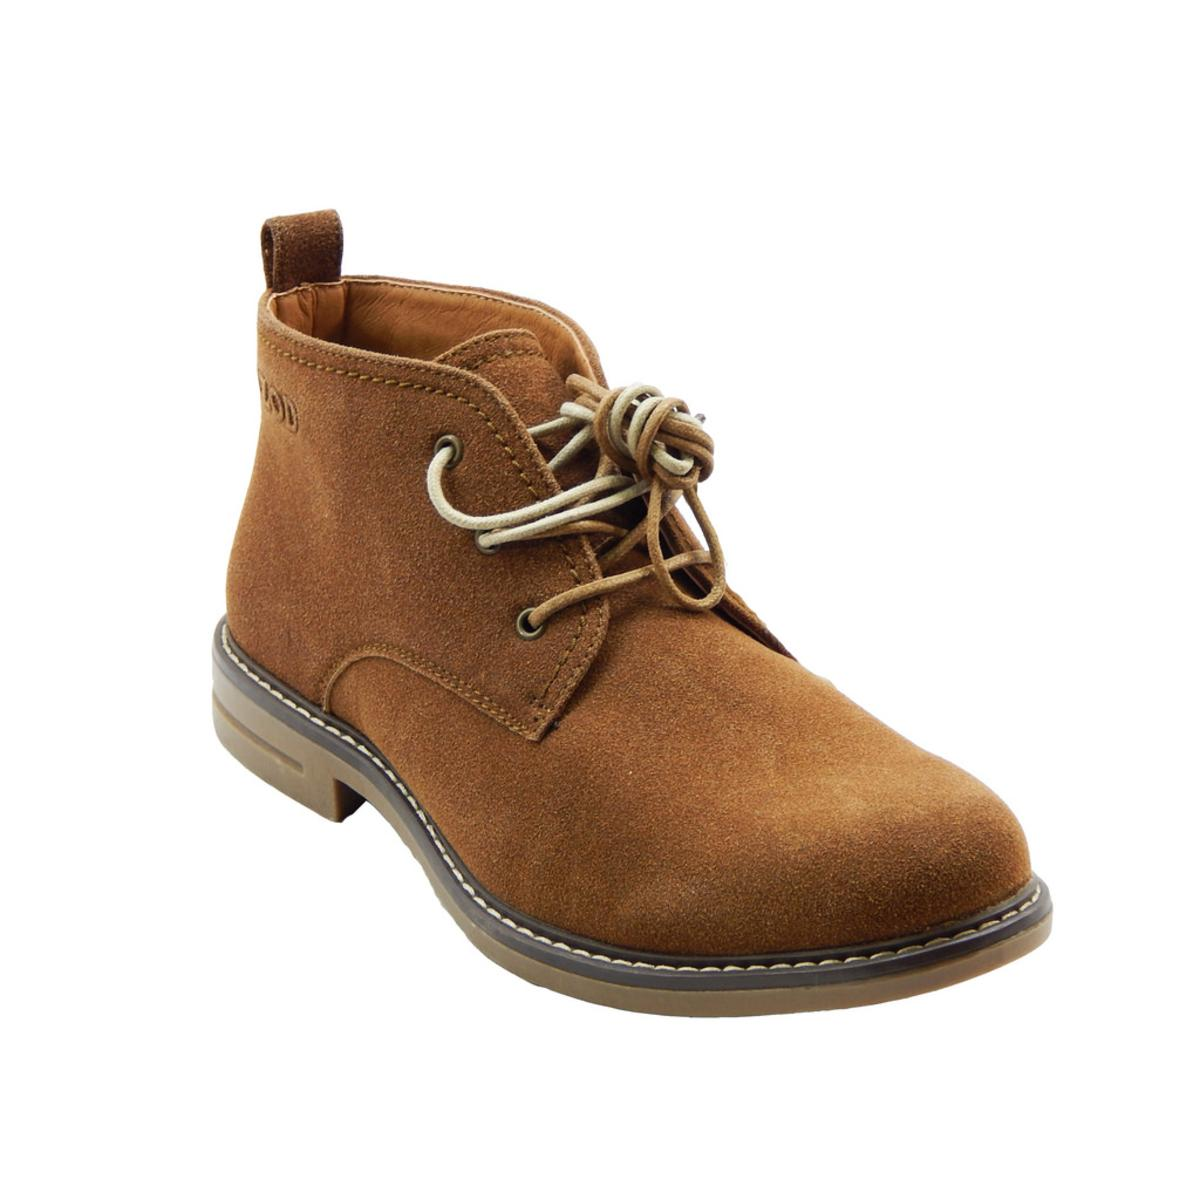 c730d1a06 Details about Izod Cally Men's Brown Chukka Boots 8M